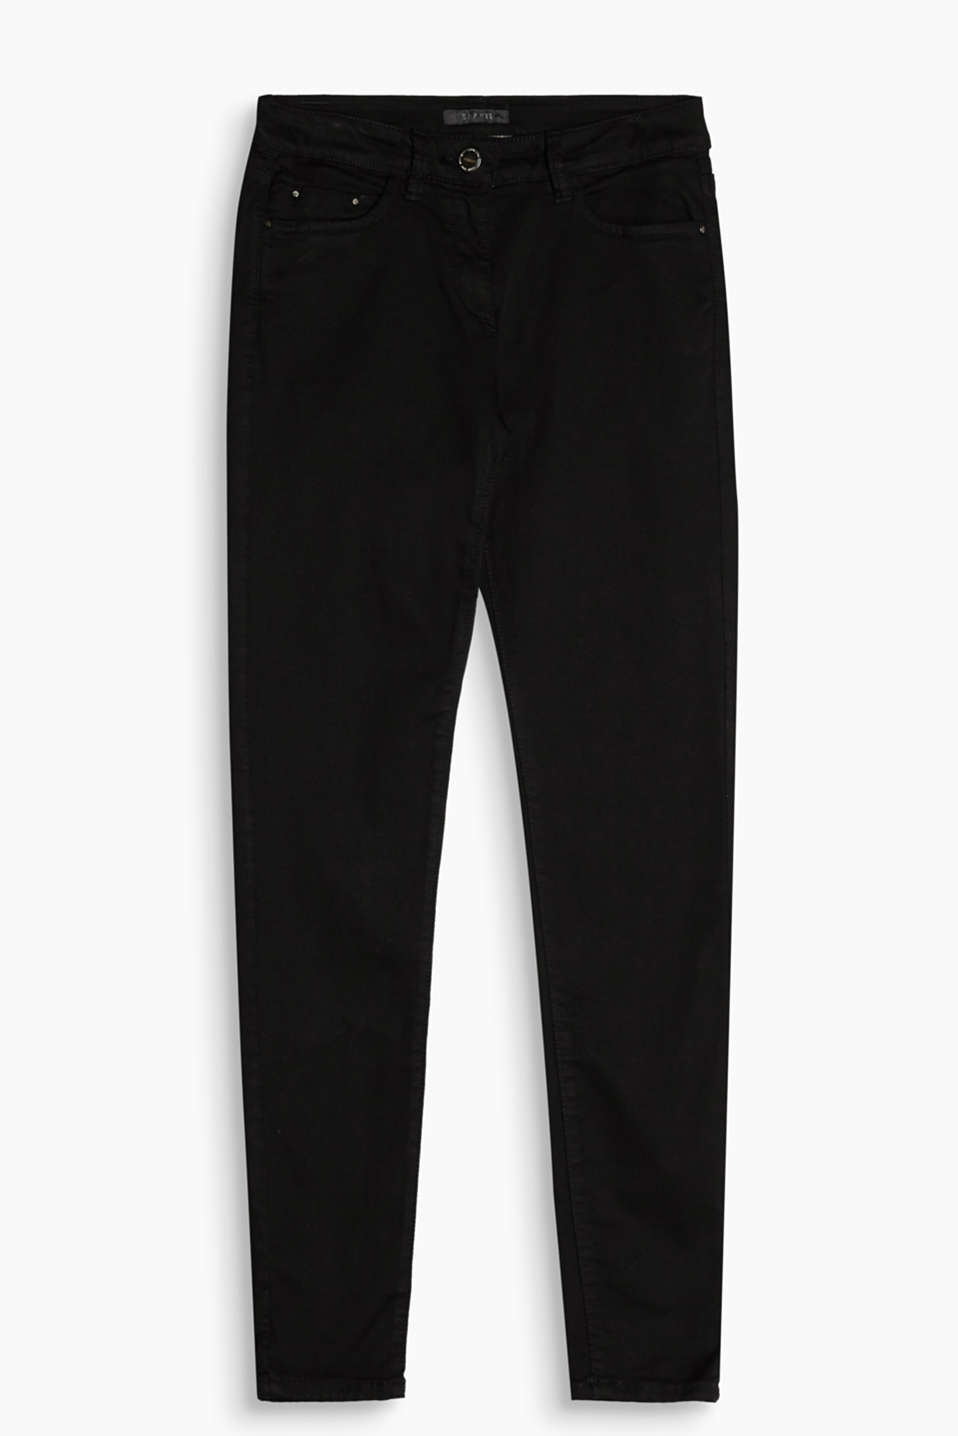 Figure-shaping: mega comfy, four-way stretch trousers in a five pocket design